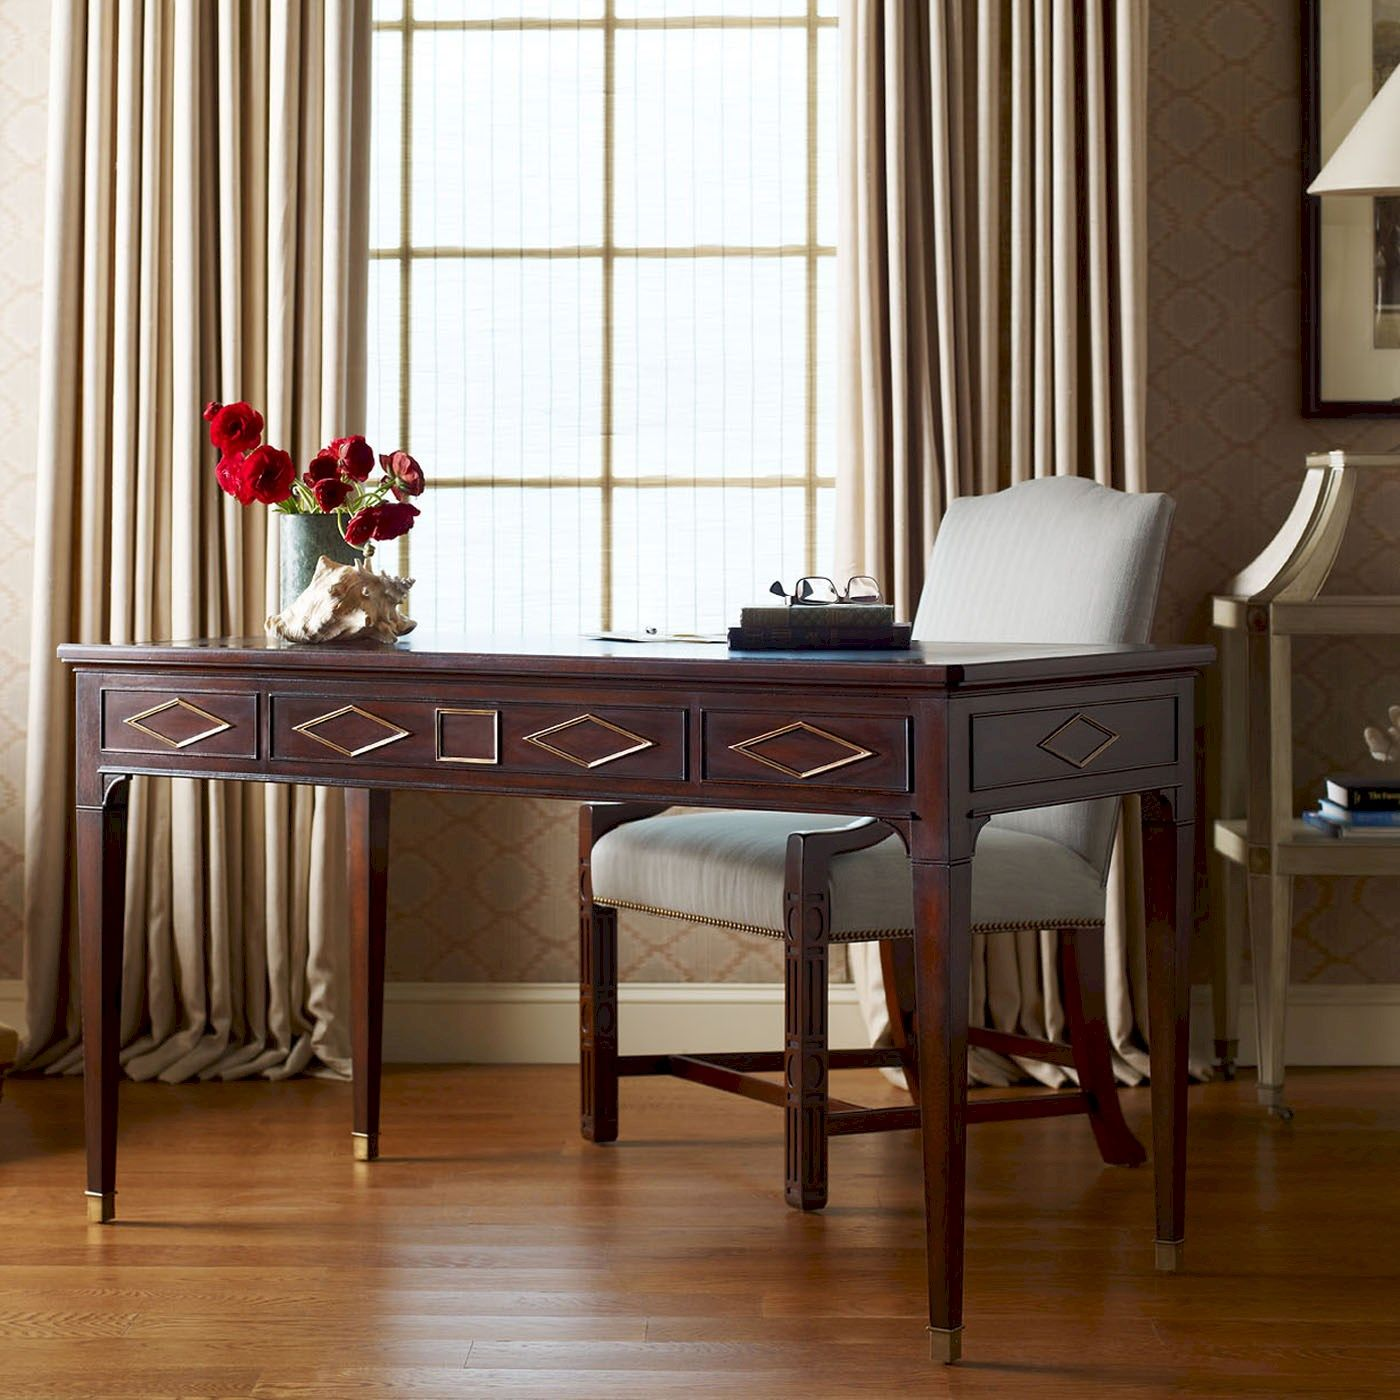 THE MICHAEL S SMITH COLLECTION Baker Furniture, Suite 60